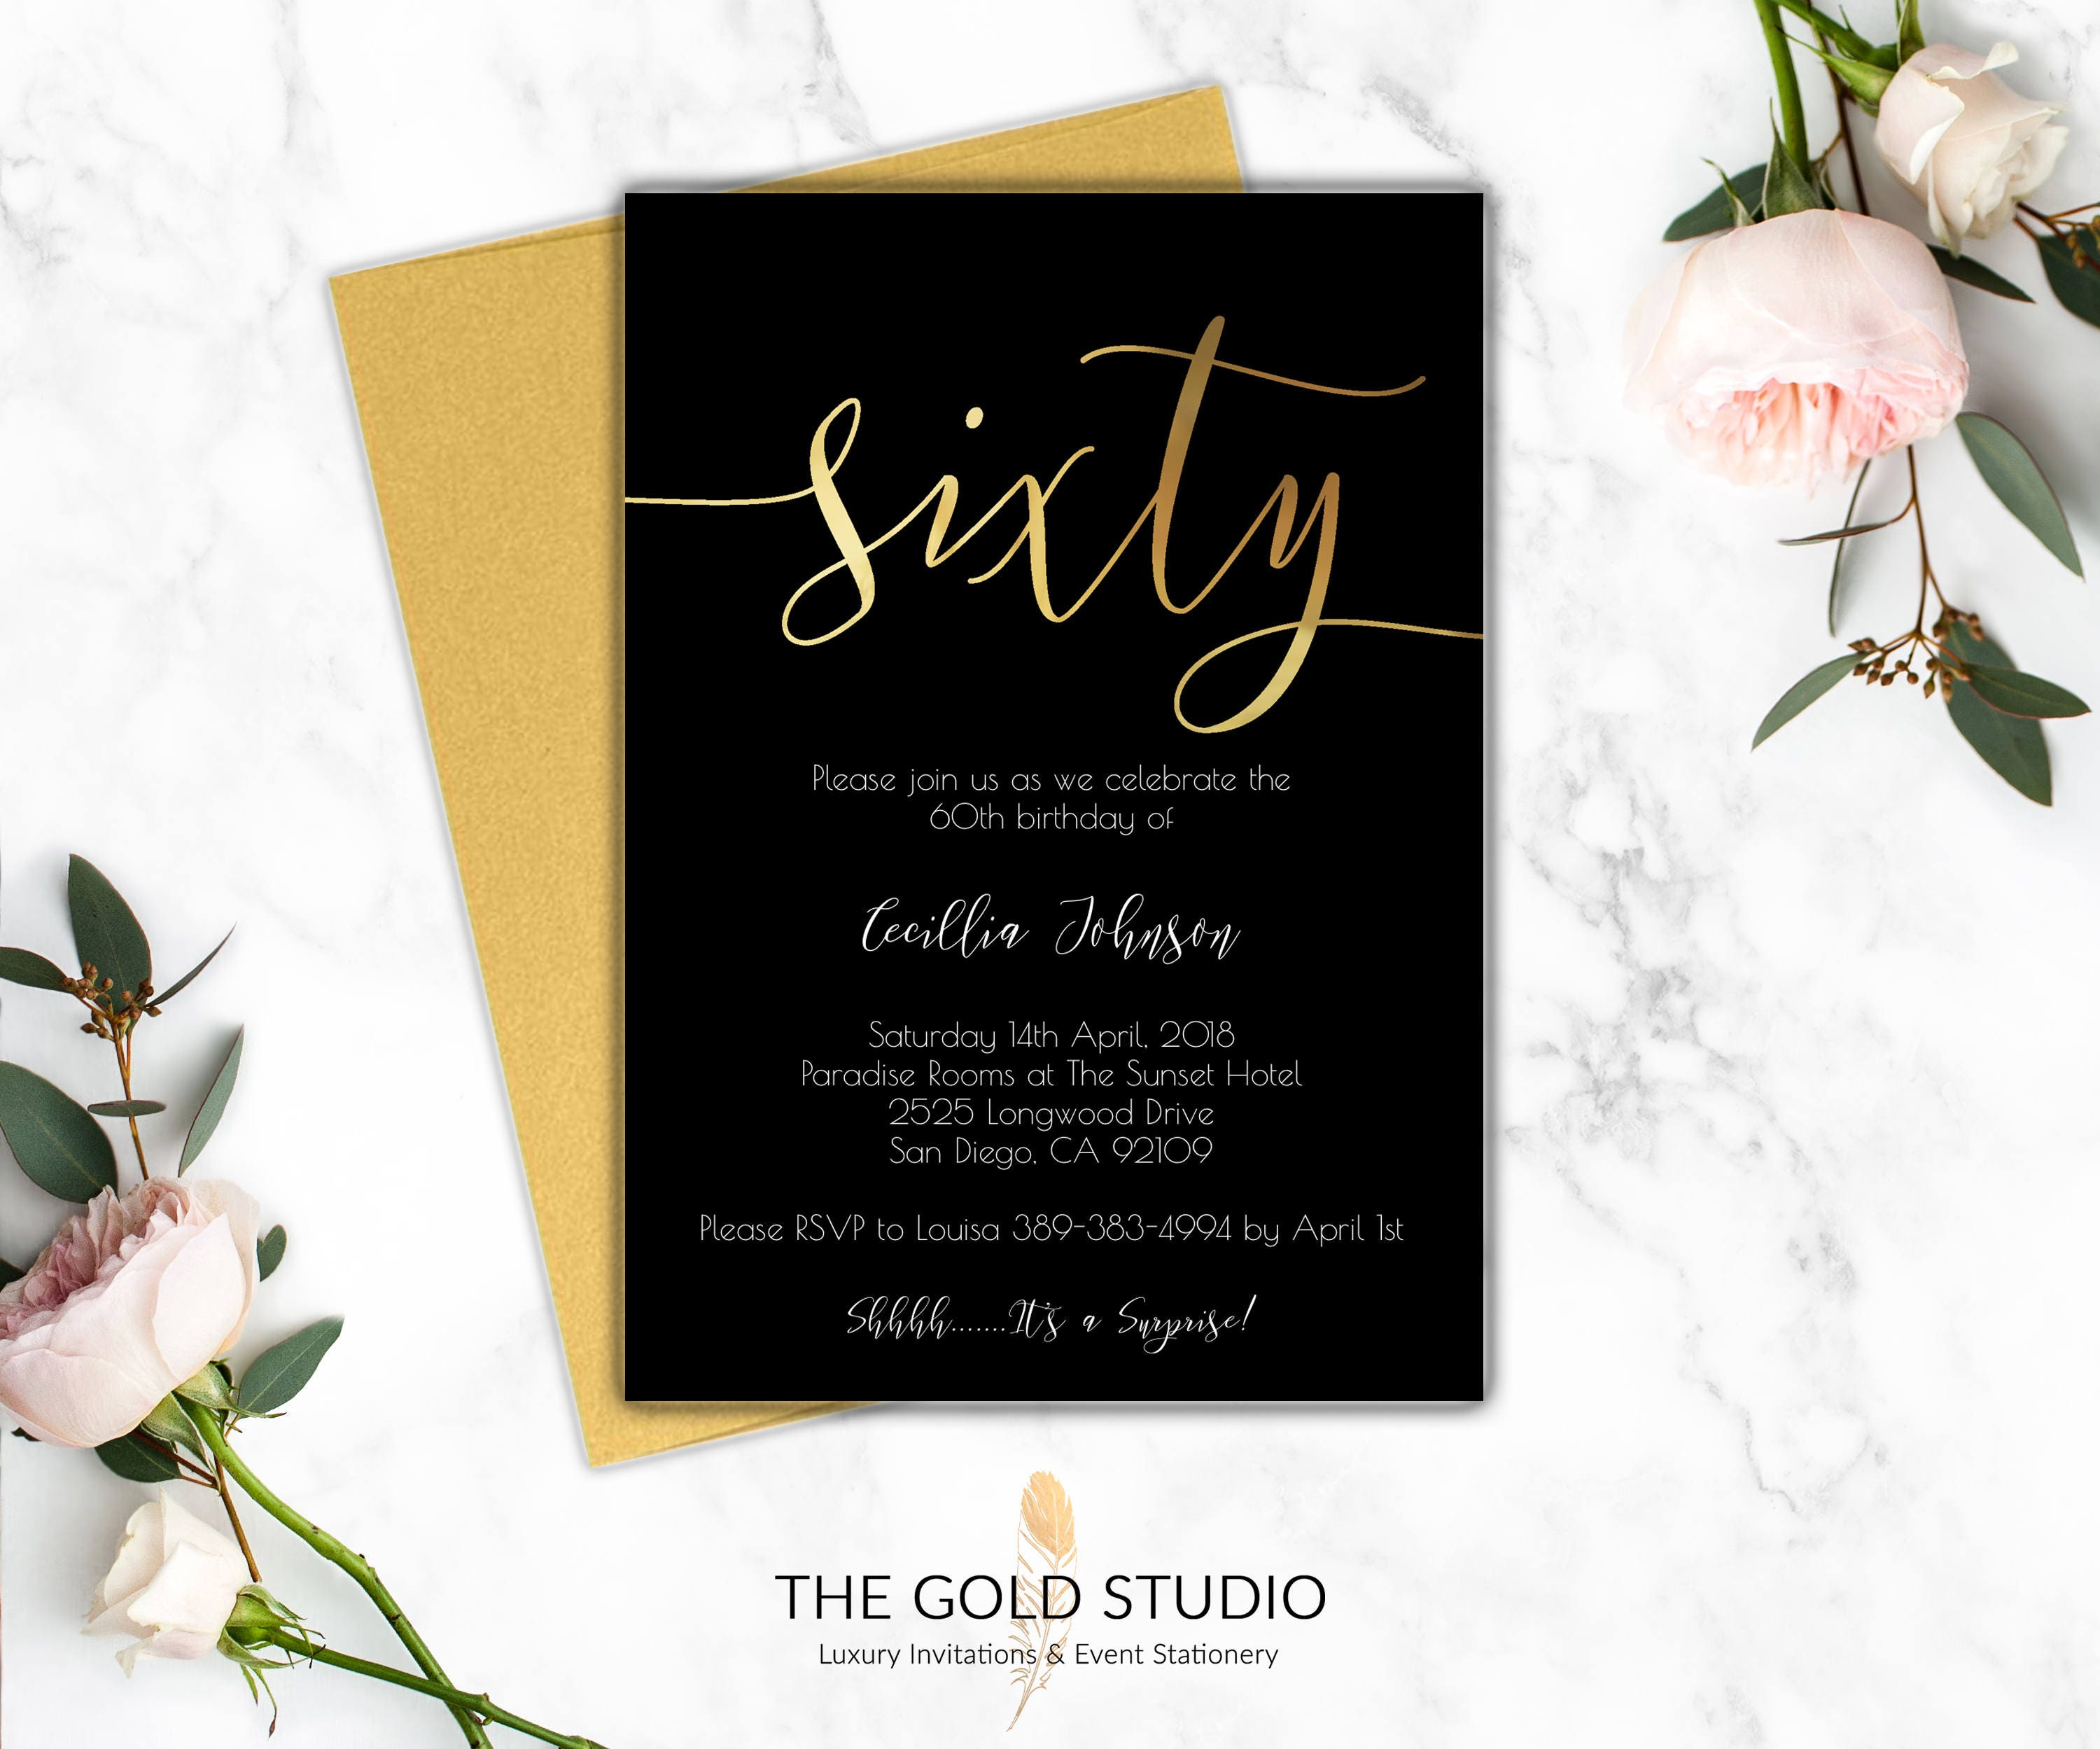 60th Birthday Invitations | Modern Black & Gold Printed Invitations ...